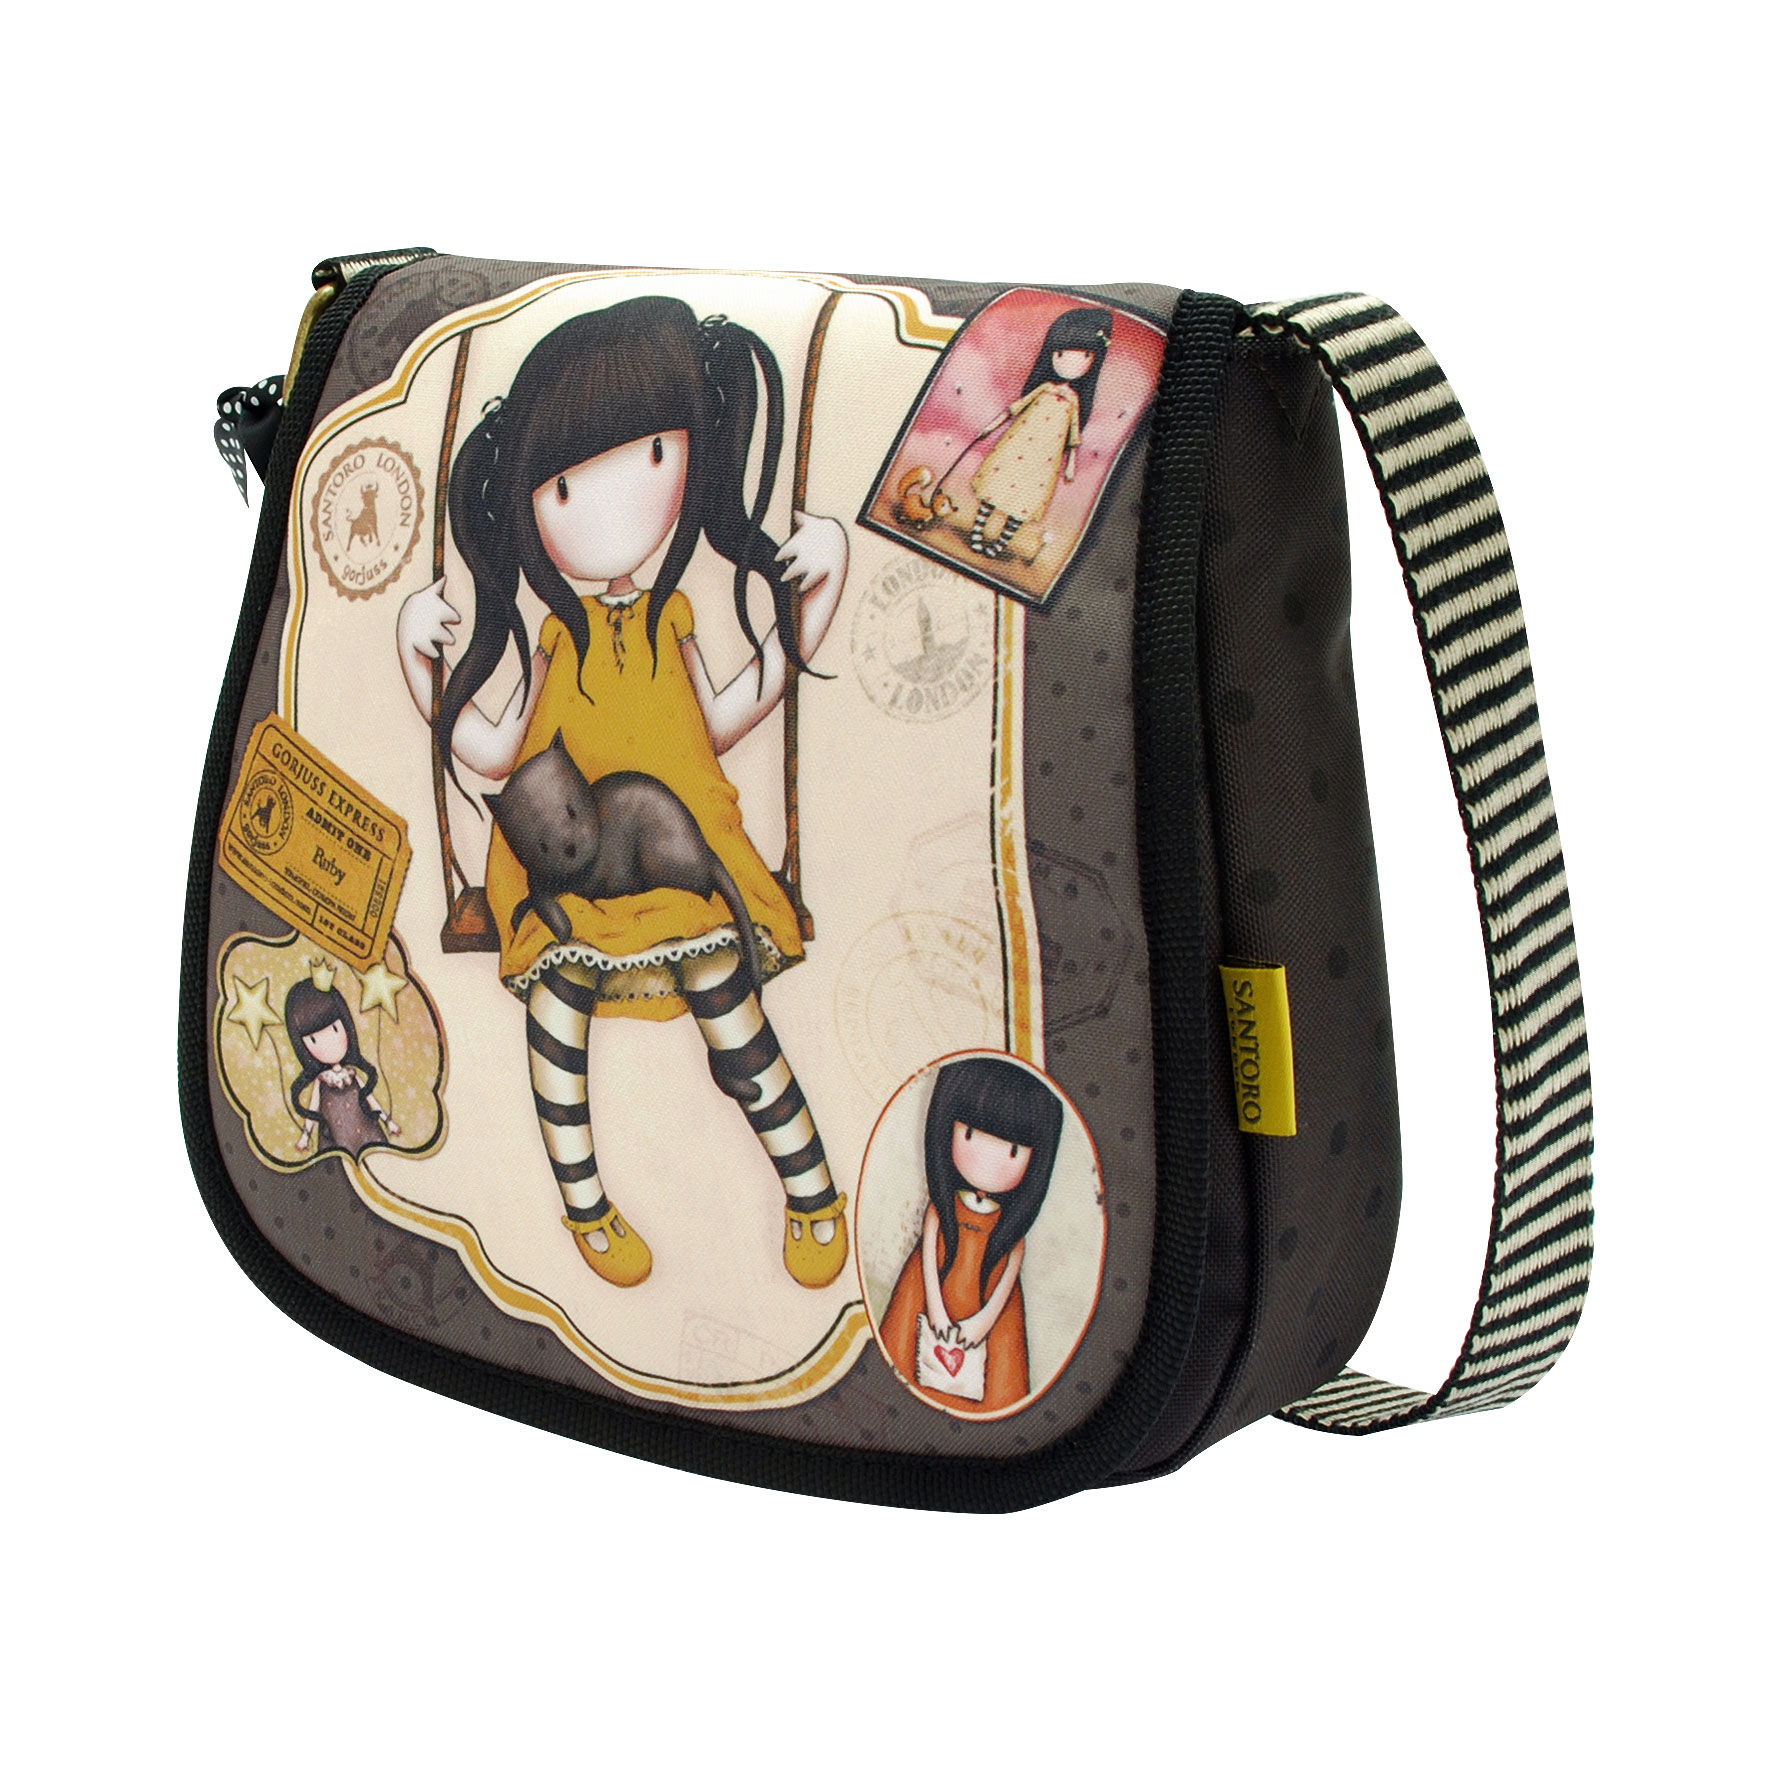 Kabelka Gorjuss Vacation Small Shoulder Bag with Flap - Ruby Yellow 563GJ03